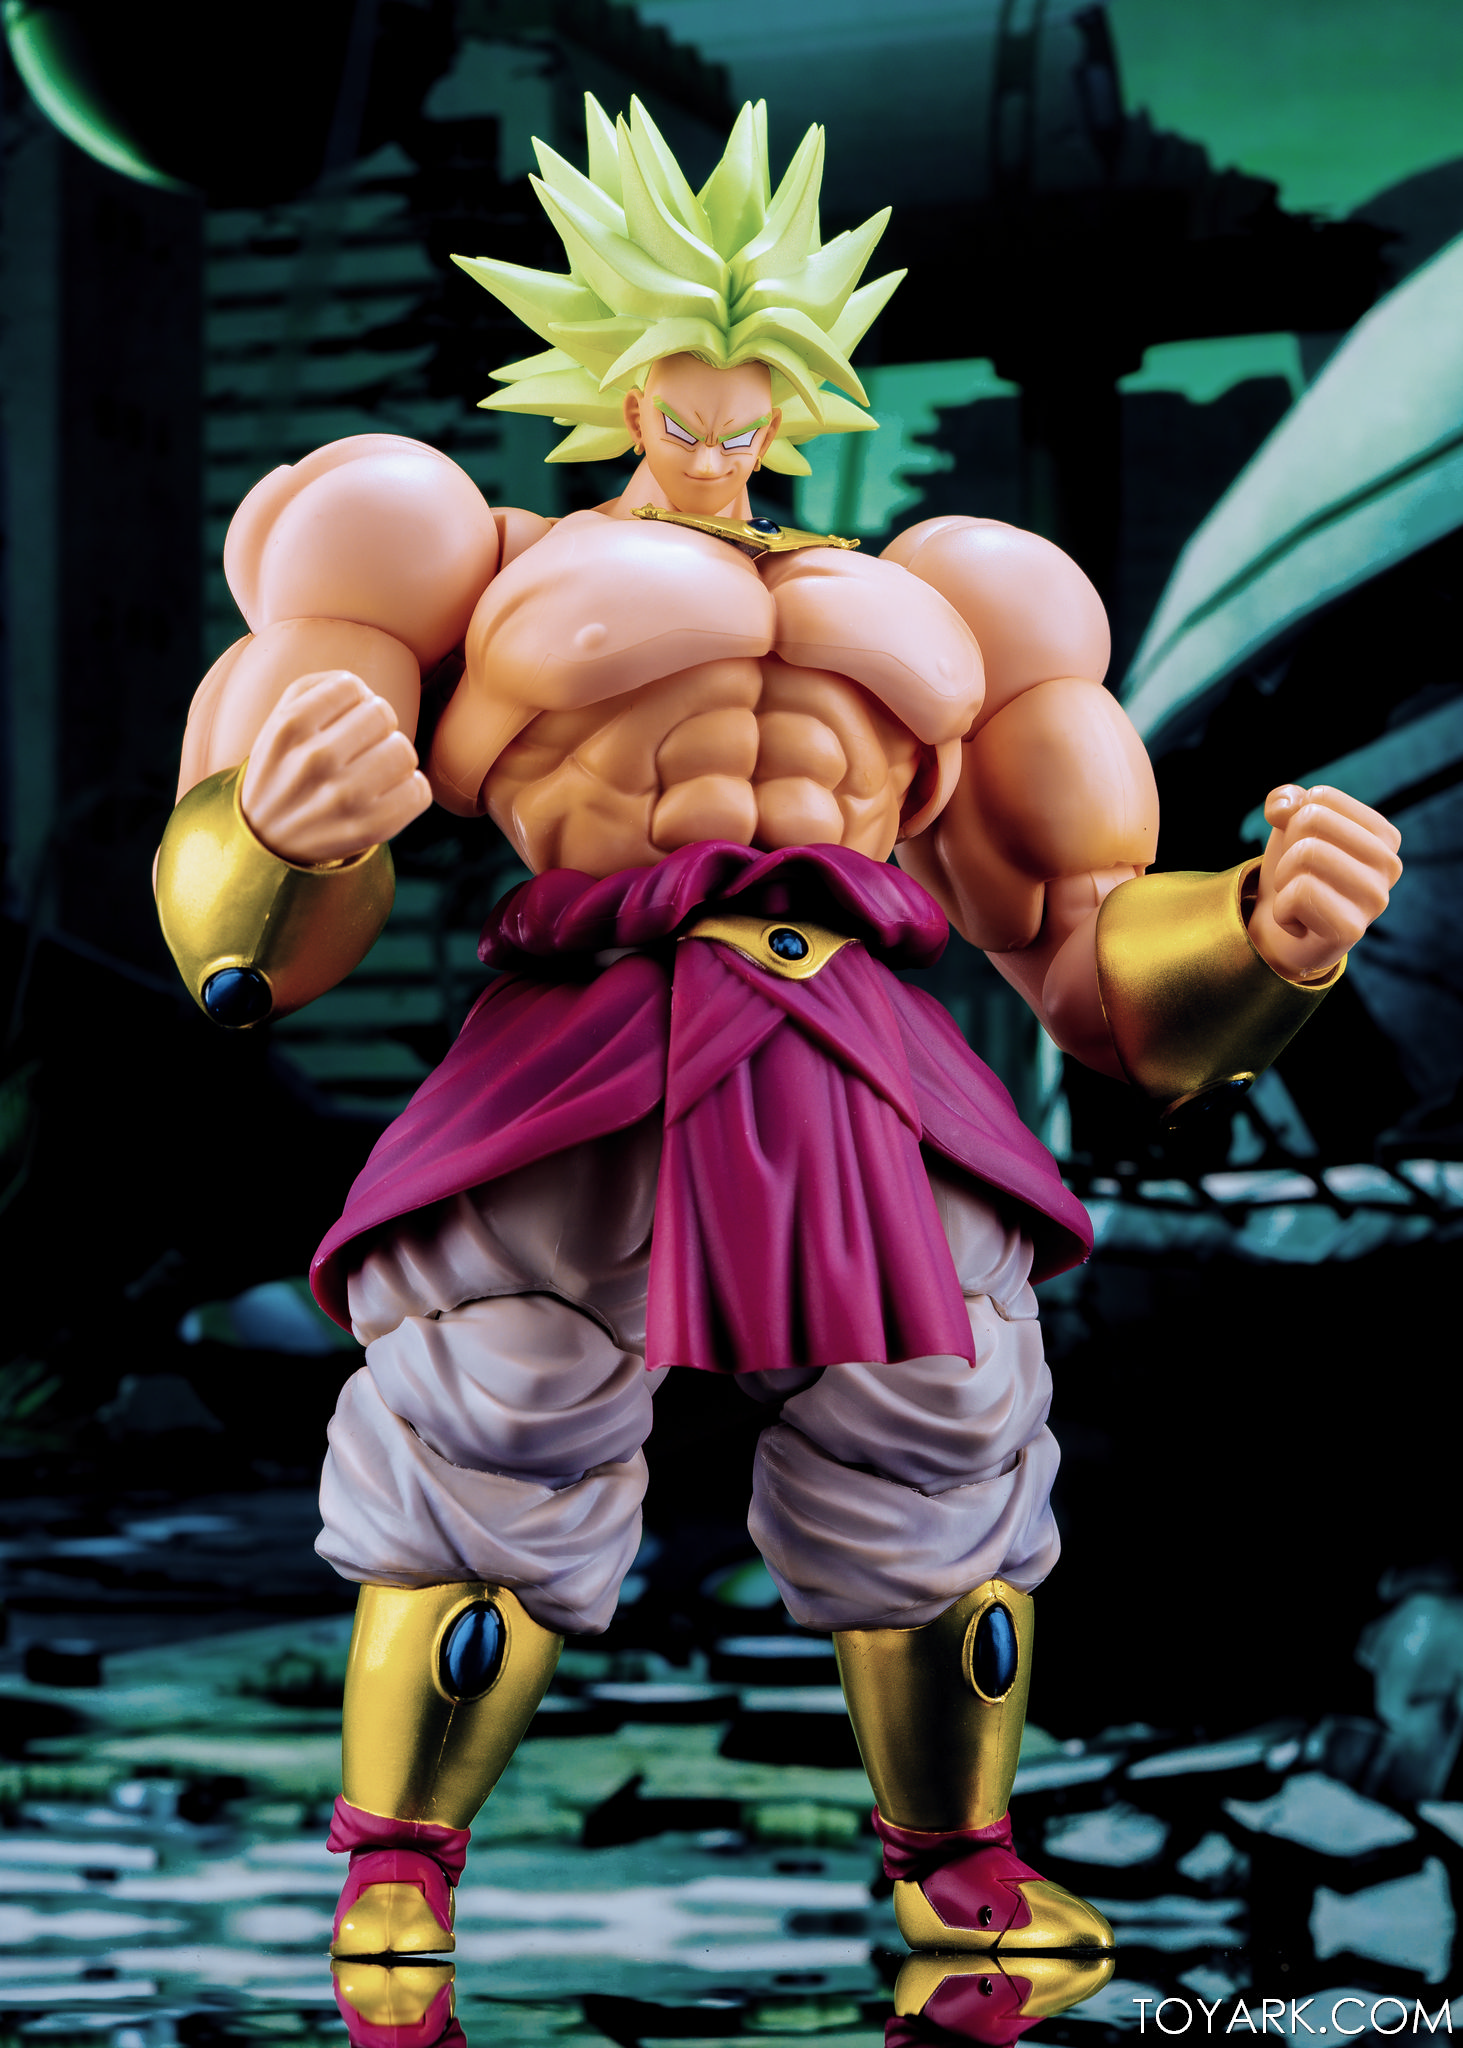 H Figuarts Broly SDCC 2018 Exclusive Tamashii Nation Bluefin S